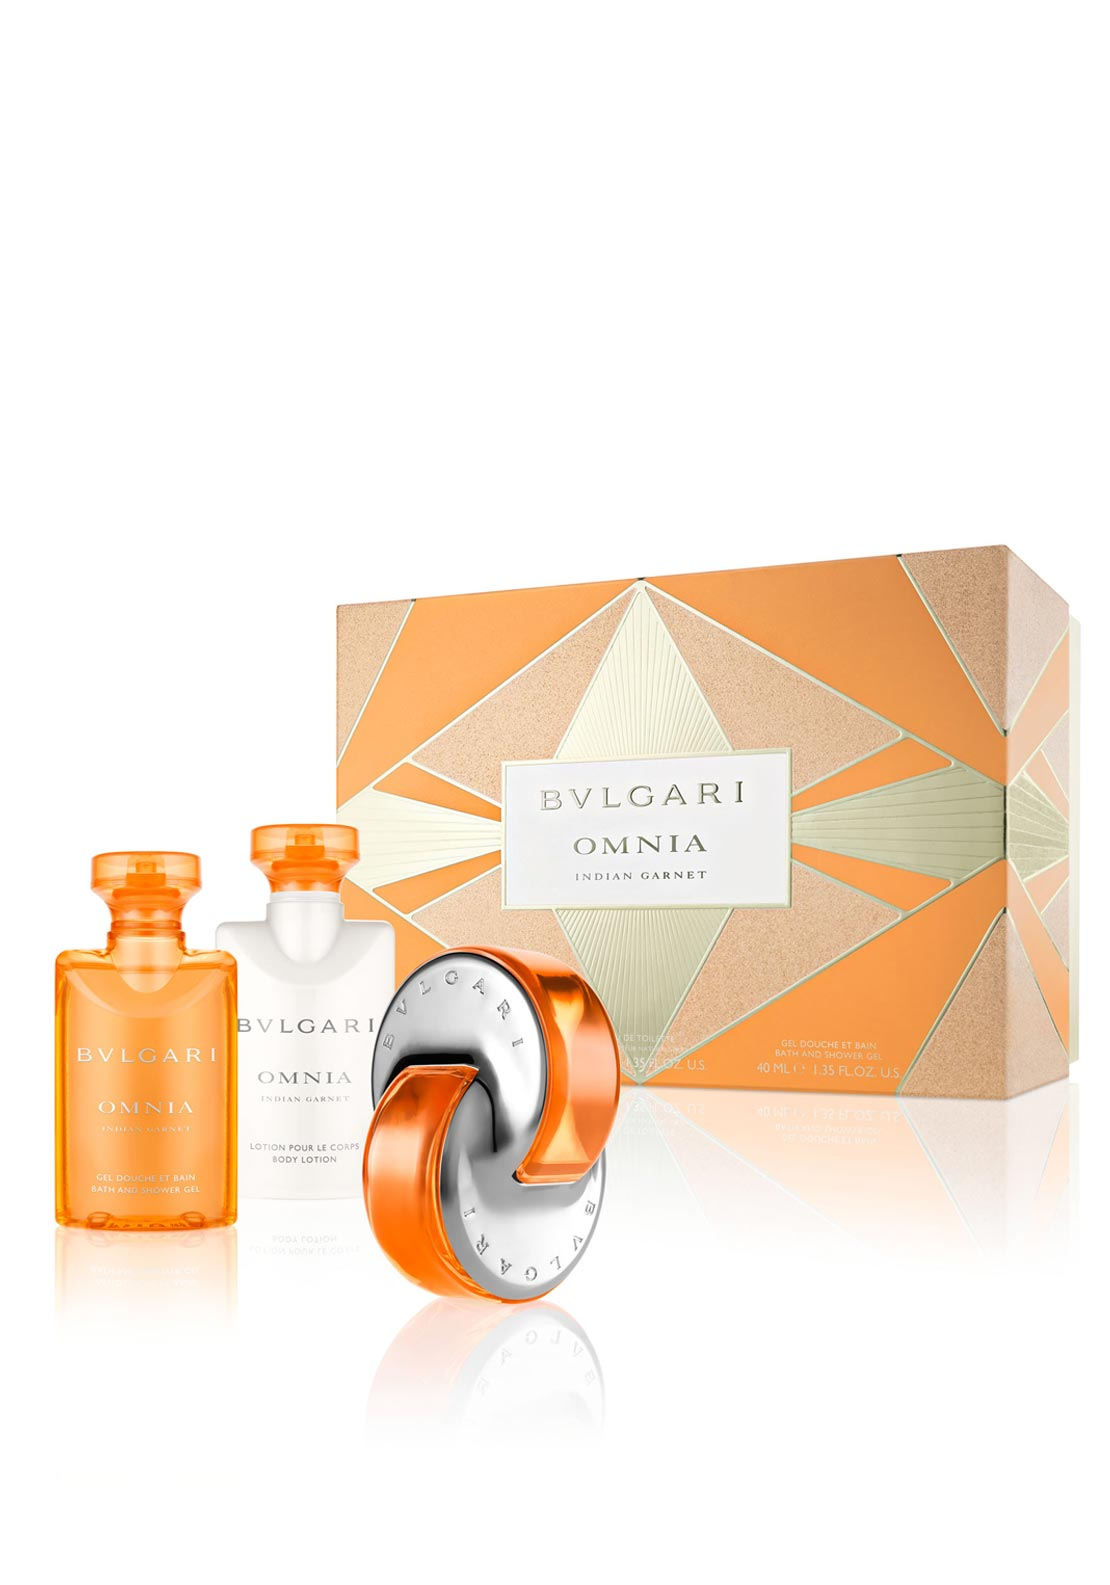 Bvlgari Omnia Indian Garnet Womens Gift Set, 40ml